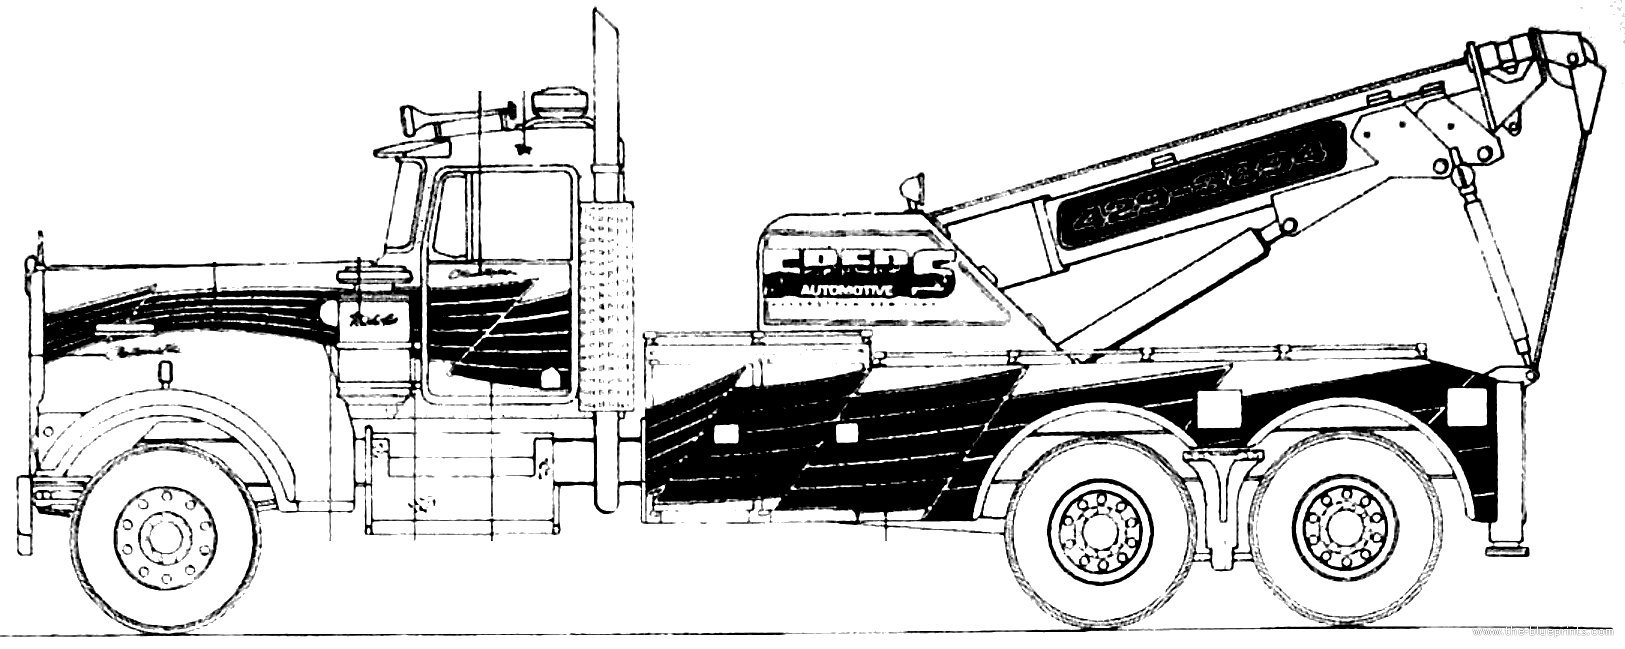 85532255 likewise Monster Truck Coloring Pages further Truck 4463706 further Semi Truck Vector Clipart additionally Dump Truck Coloring Page. on black kenworth w900